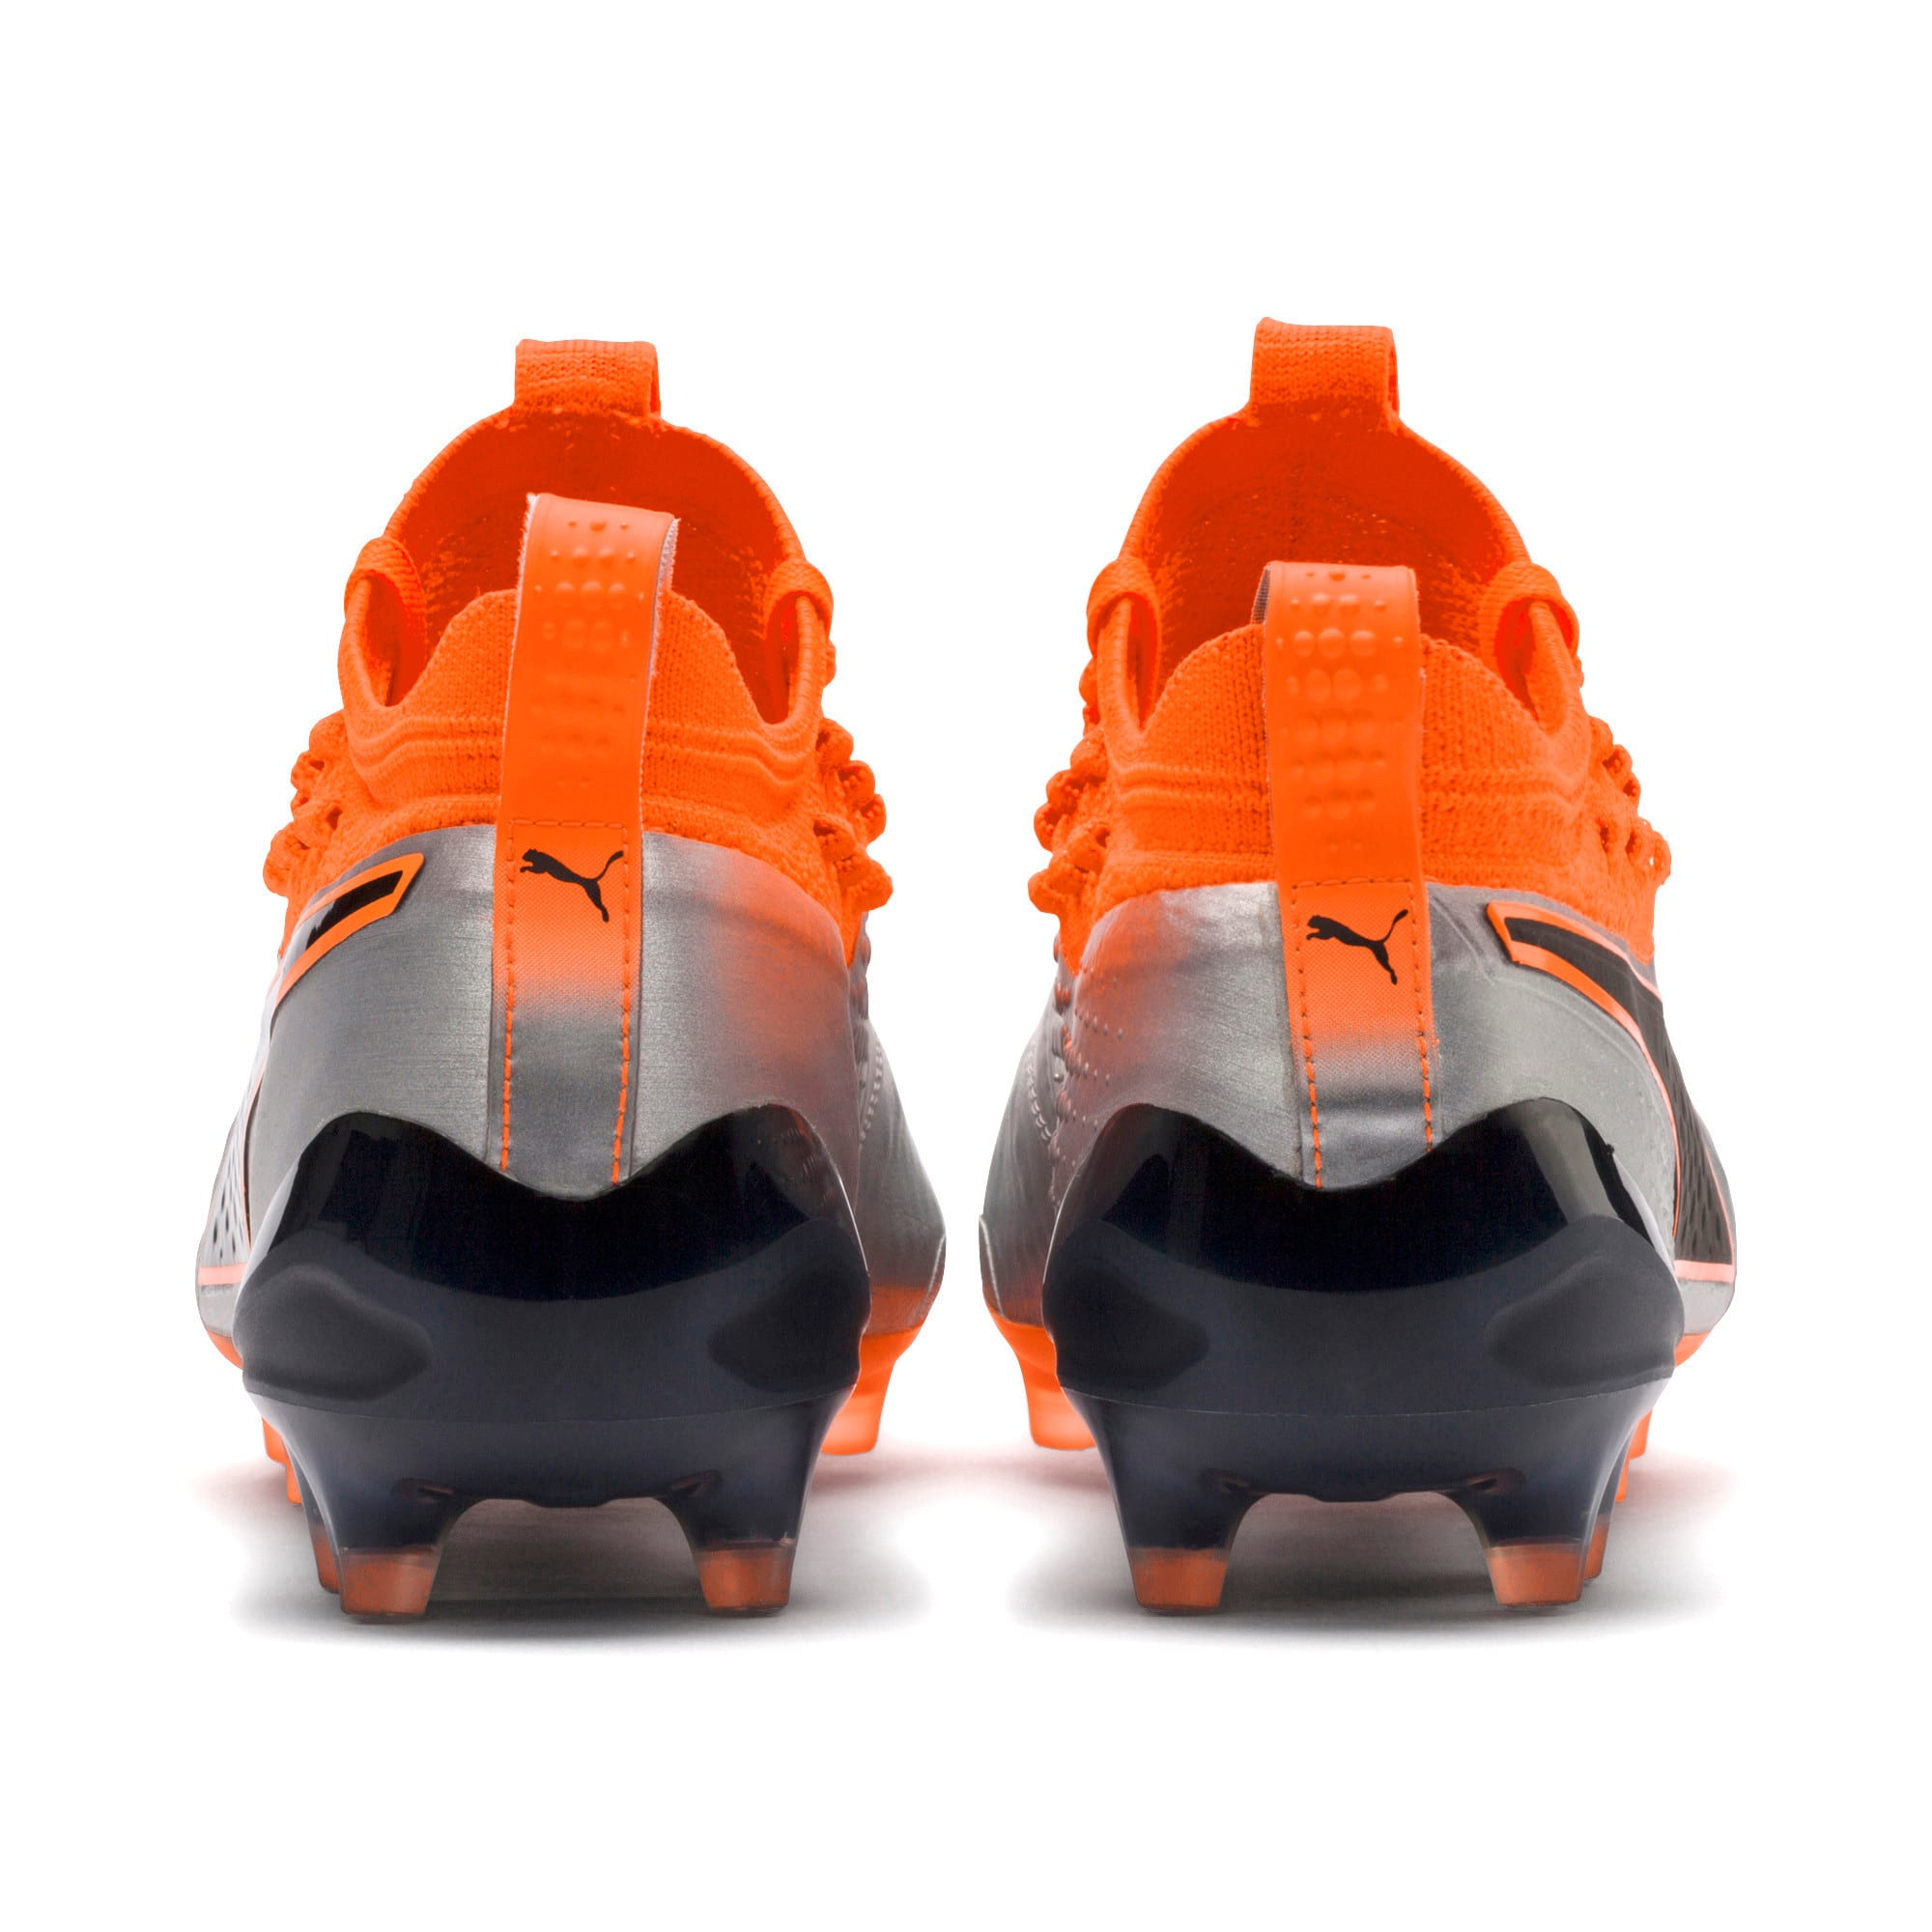 Thumbnail 4 of PUMA ONE 1 Leather FG/AG Men's Football Boots, Silver-Orange-Black, medium-IND